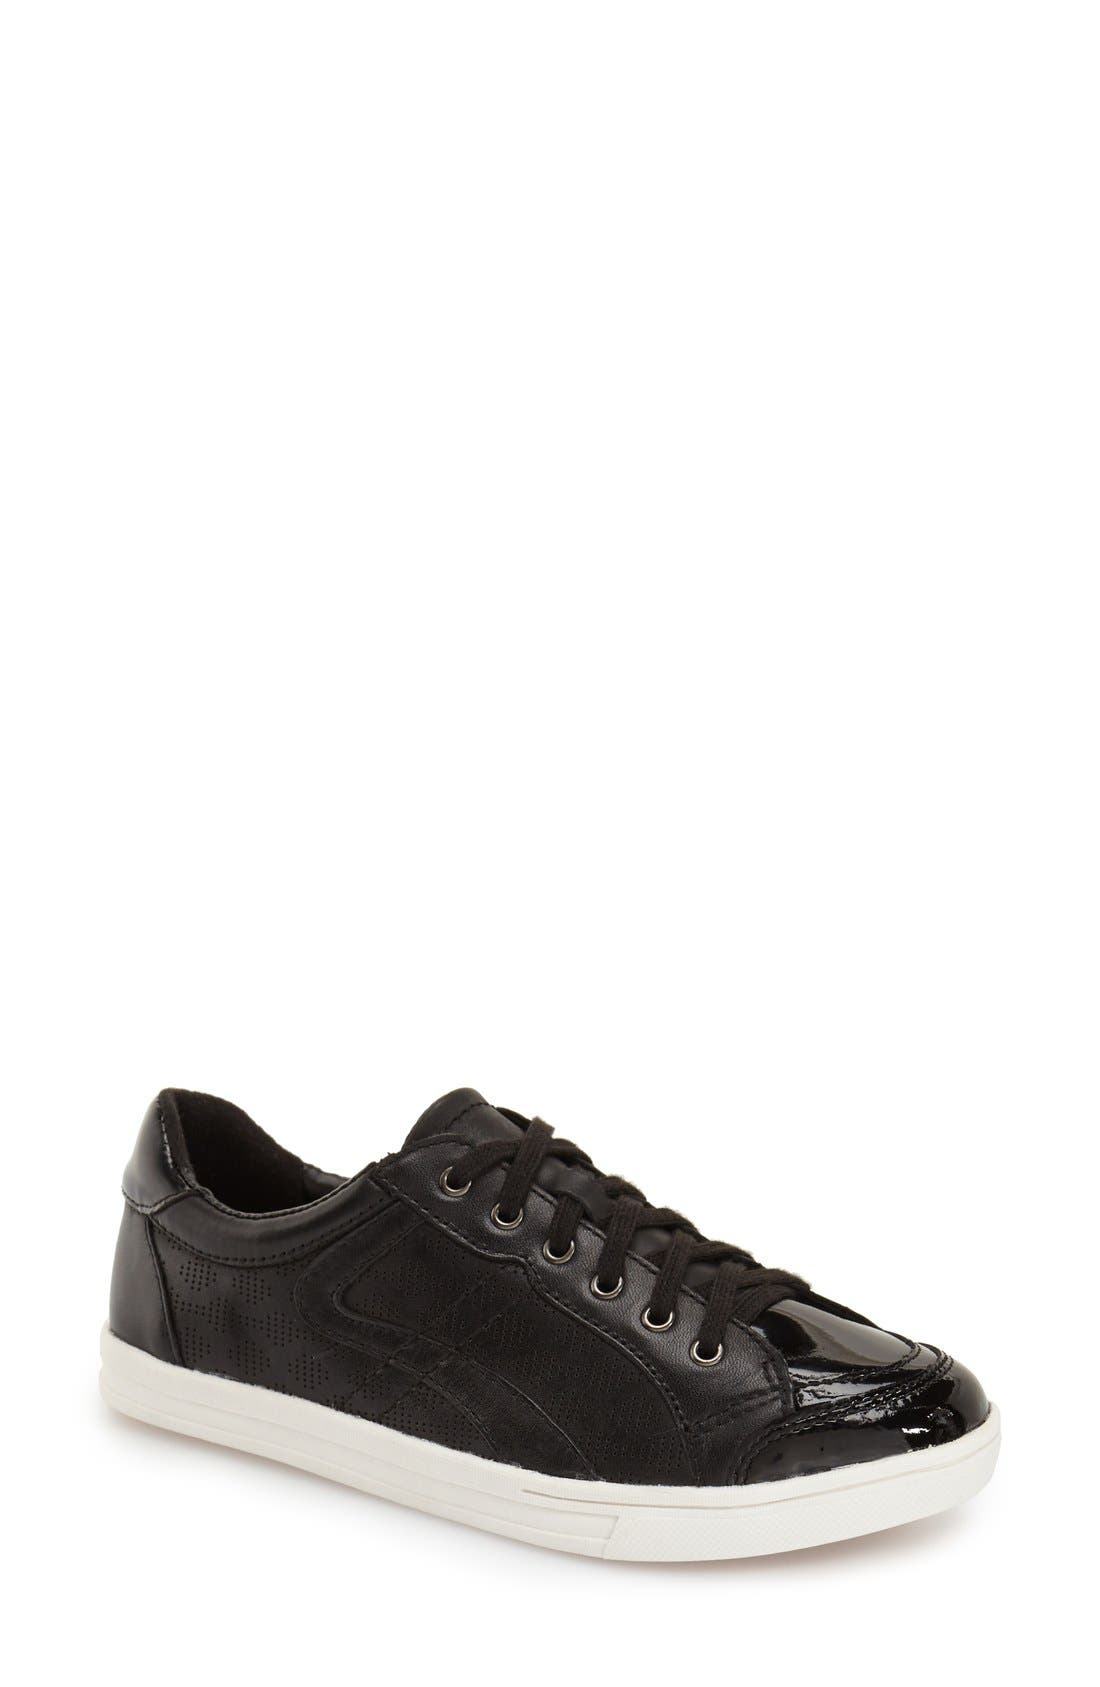 Main Image - Earth® 'Quince' Leather Sneaker (Women)